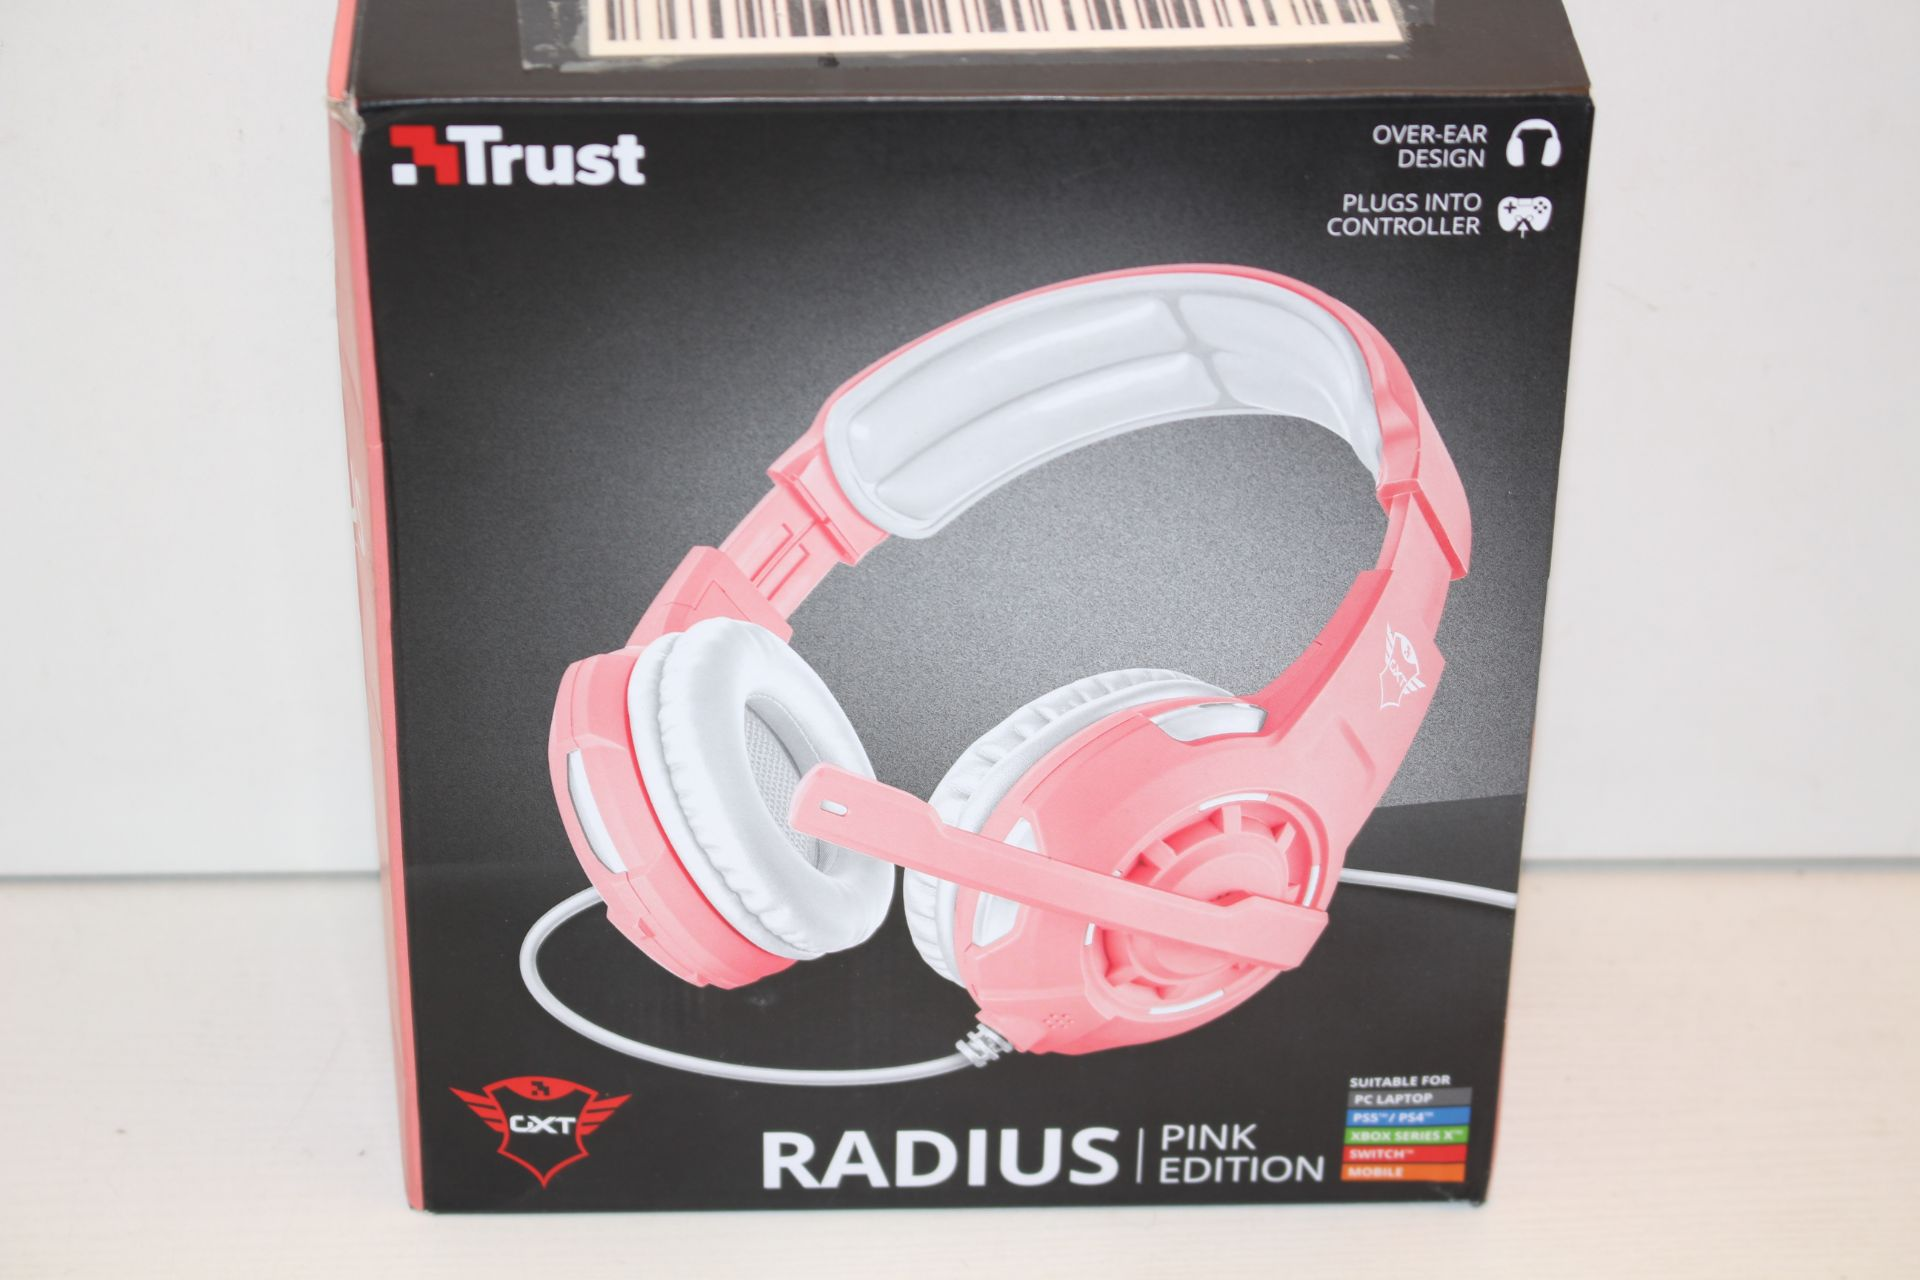 BOXED TRUST RADIUS PINK EDITION CXT GAMING HEADSET RRP £23.99Condition ReportAppraisal Available